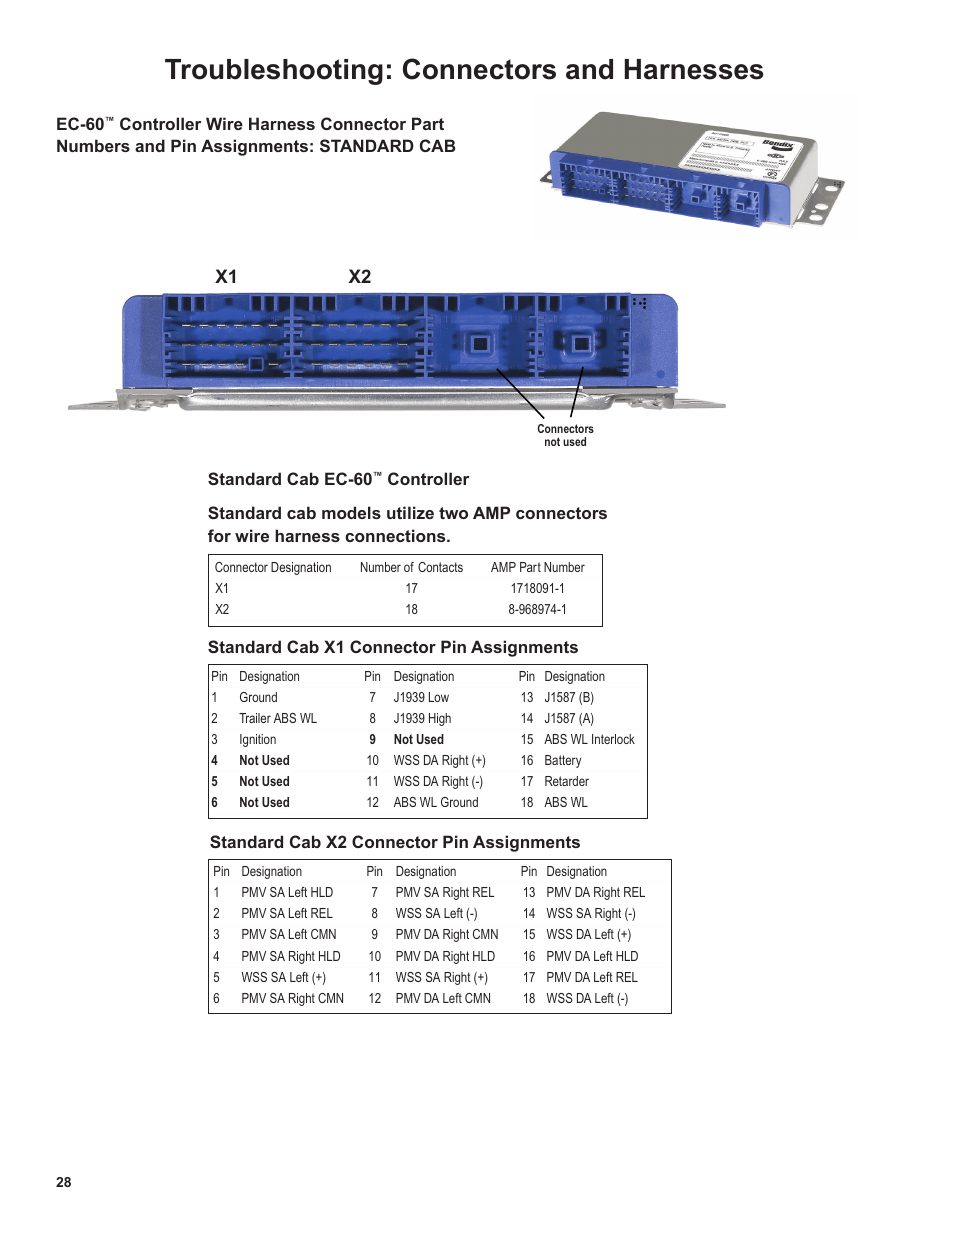 hight resolution of troubleshooting connectors and harnesses x1 x2 bendix commercial vehicle systems ec 60 atc std prem controllers user manual page 28 44